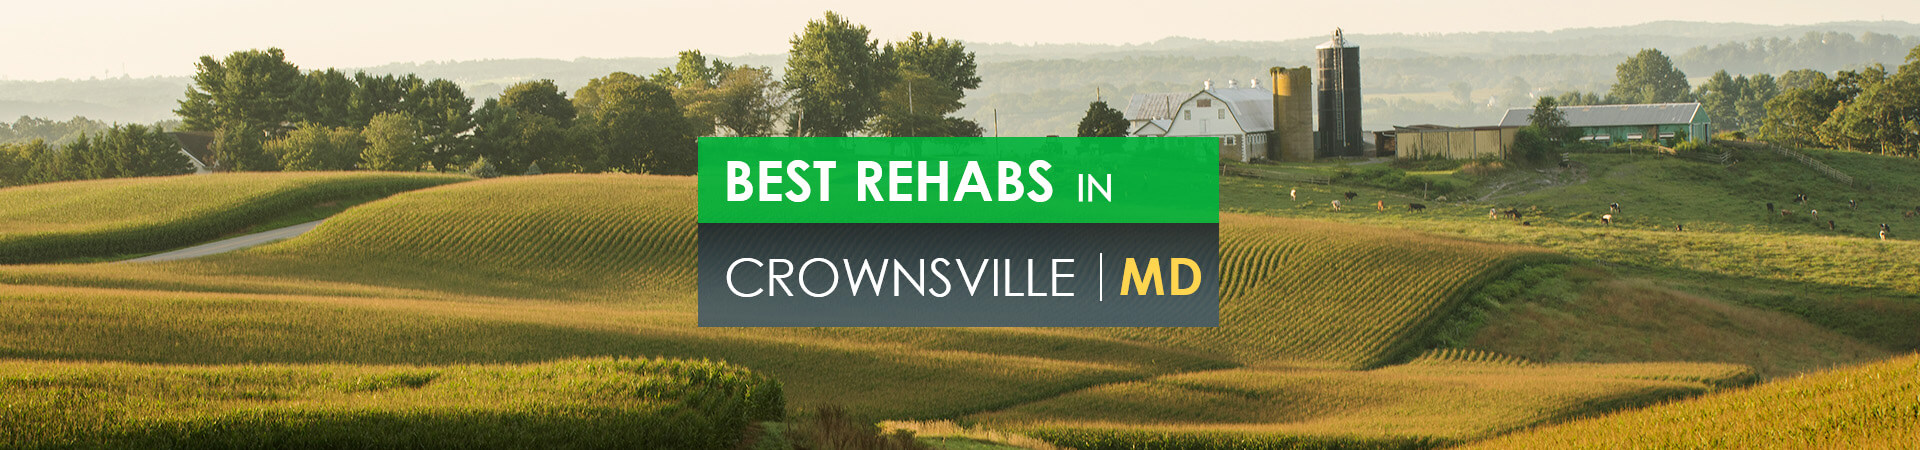 Best rehabs in Crownsville, MD